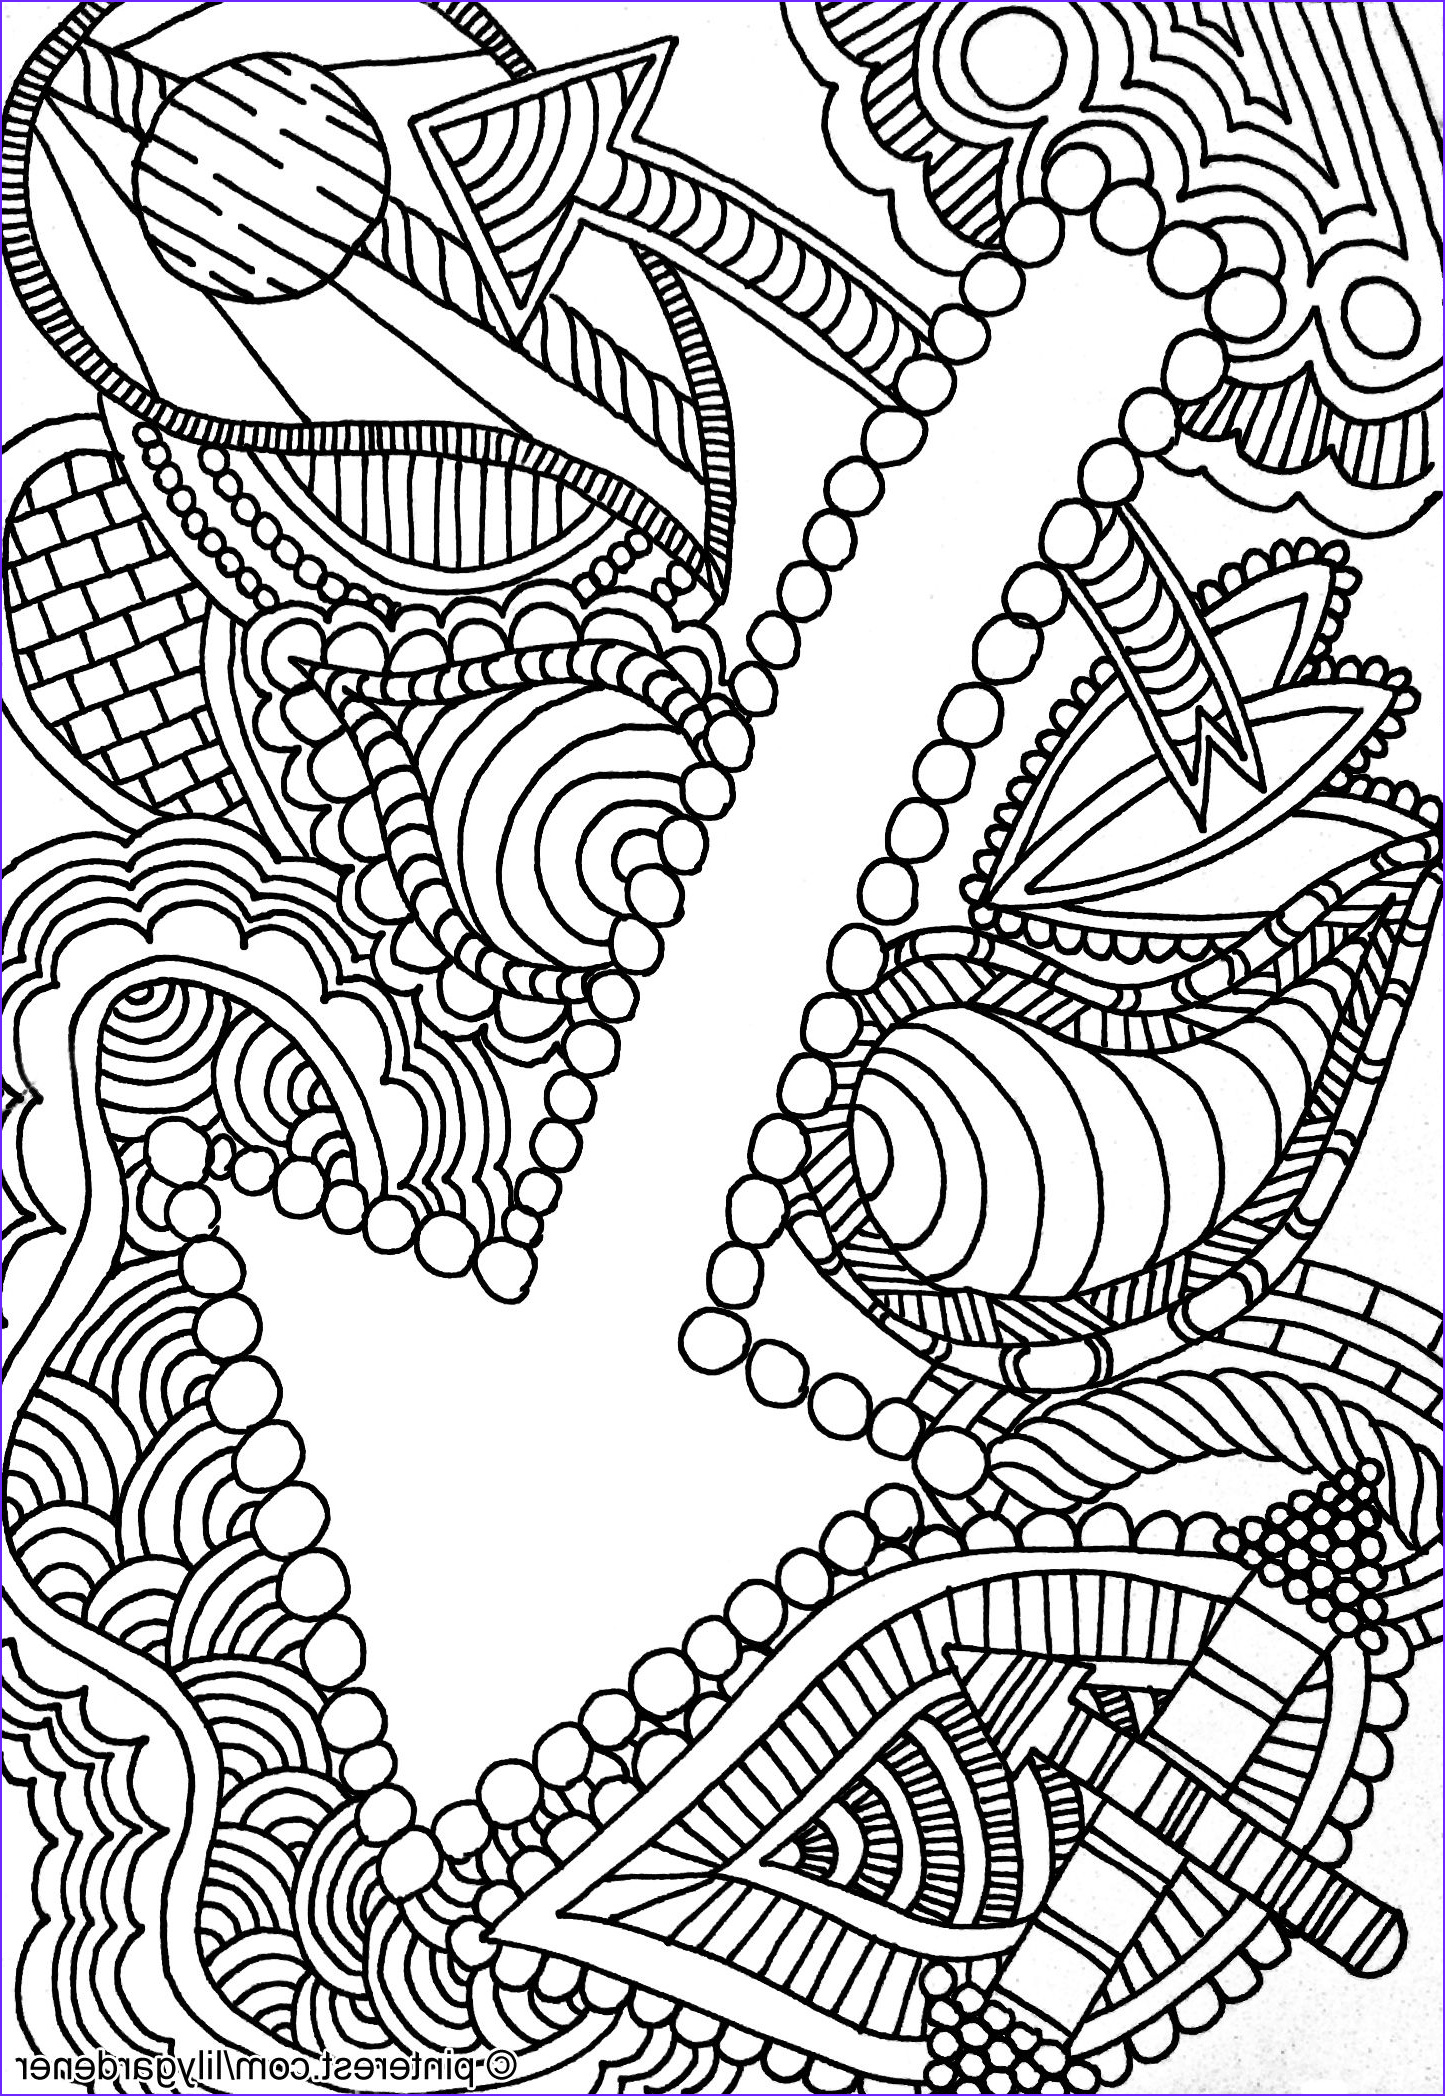 Free Abstract Coloring Pages Awesome Gallery Abstract Coloring Page for Adults High Resolution Free